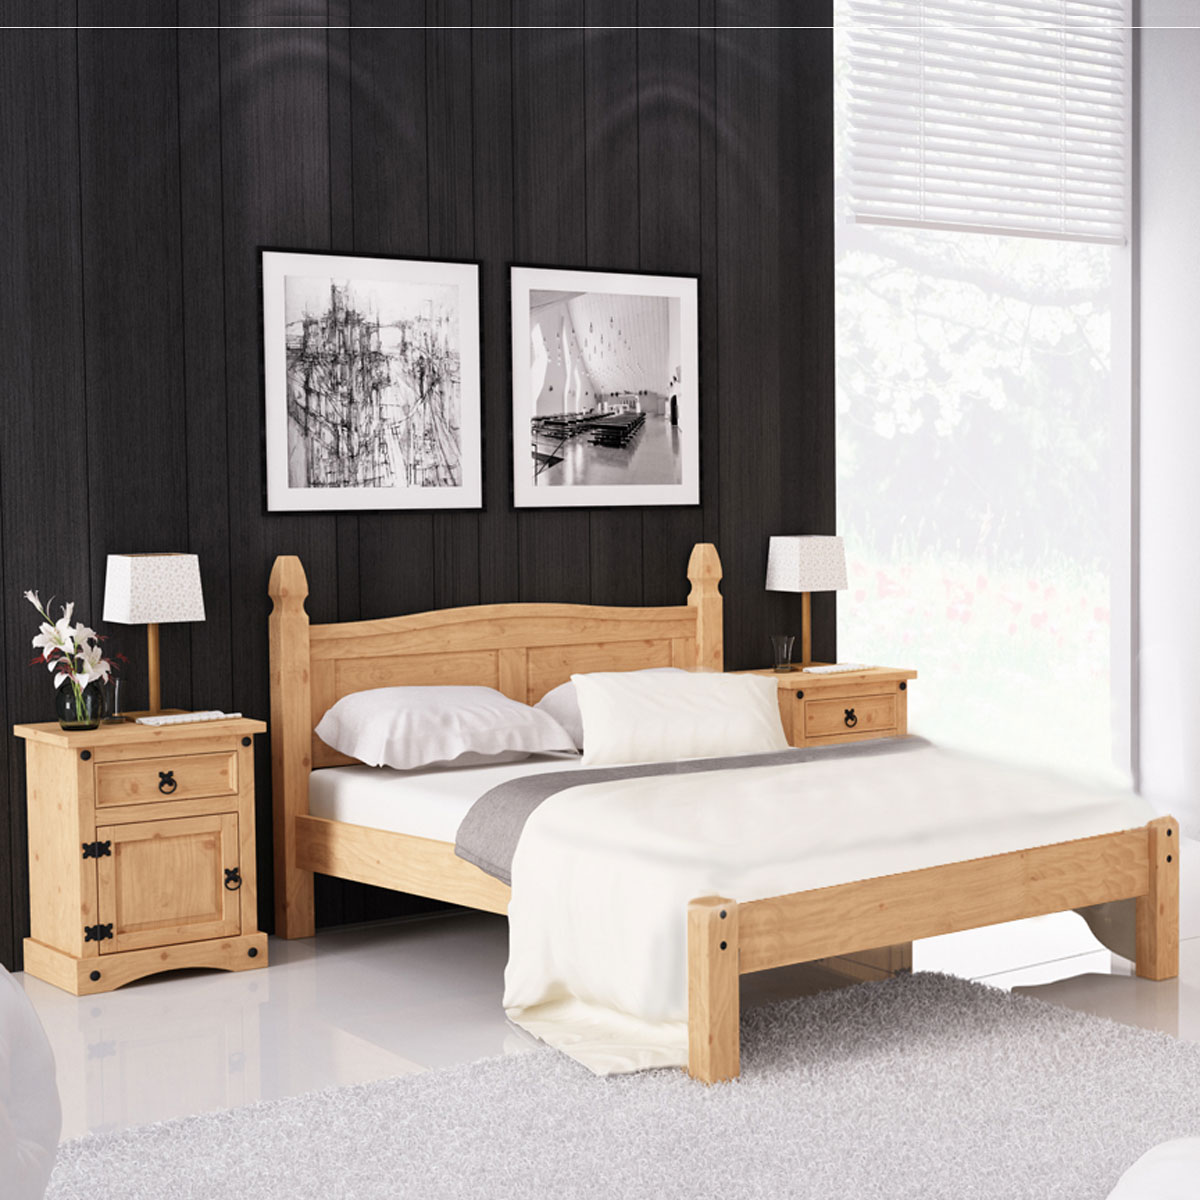 bettanlage corona schlafzimmer bett nachttisch pinie. Black Bedroom Furniture Sets. Home Design Ideas